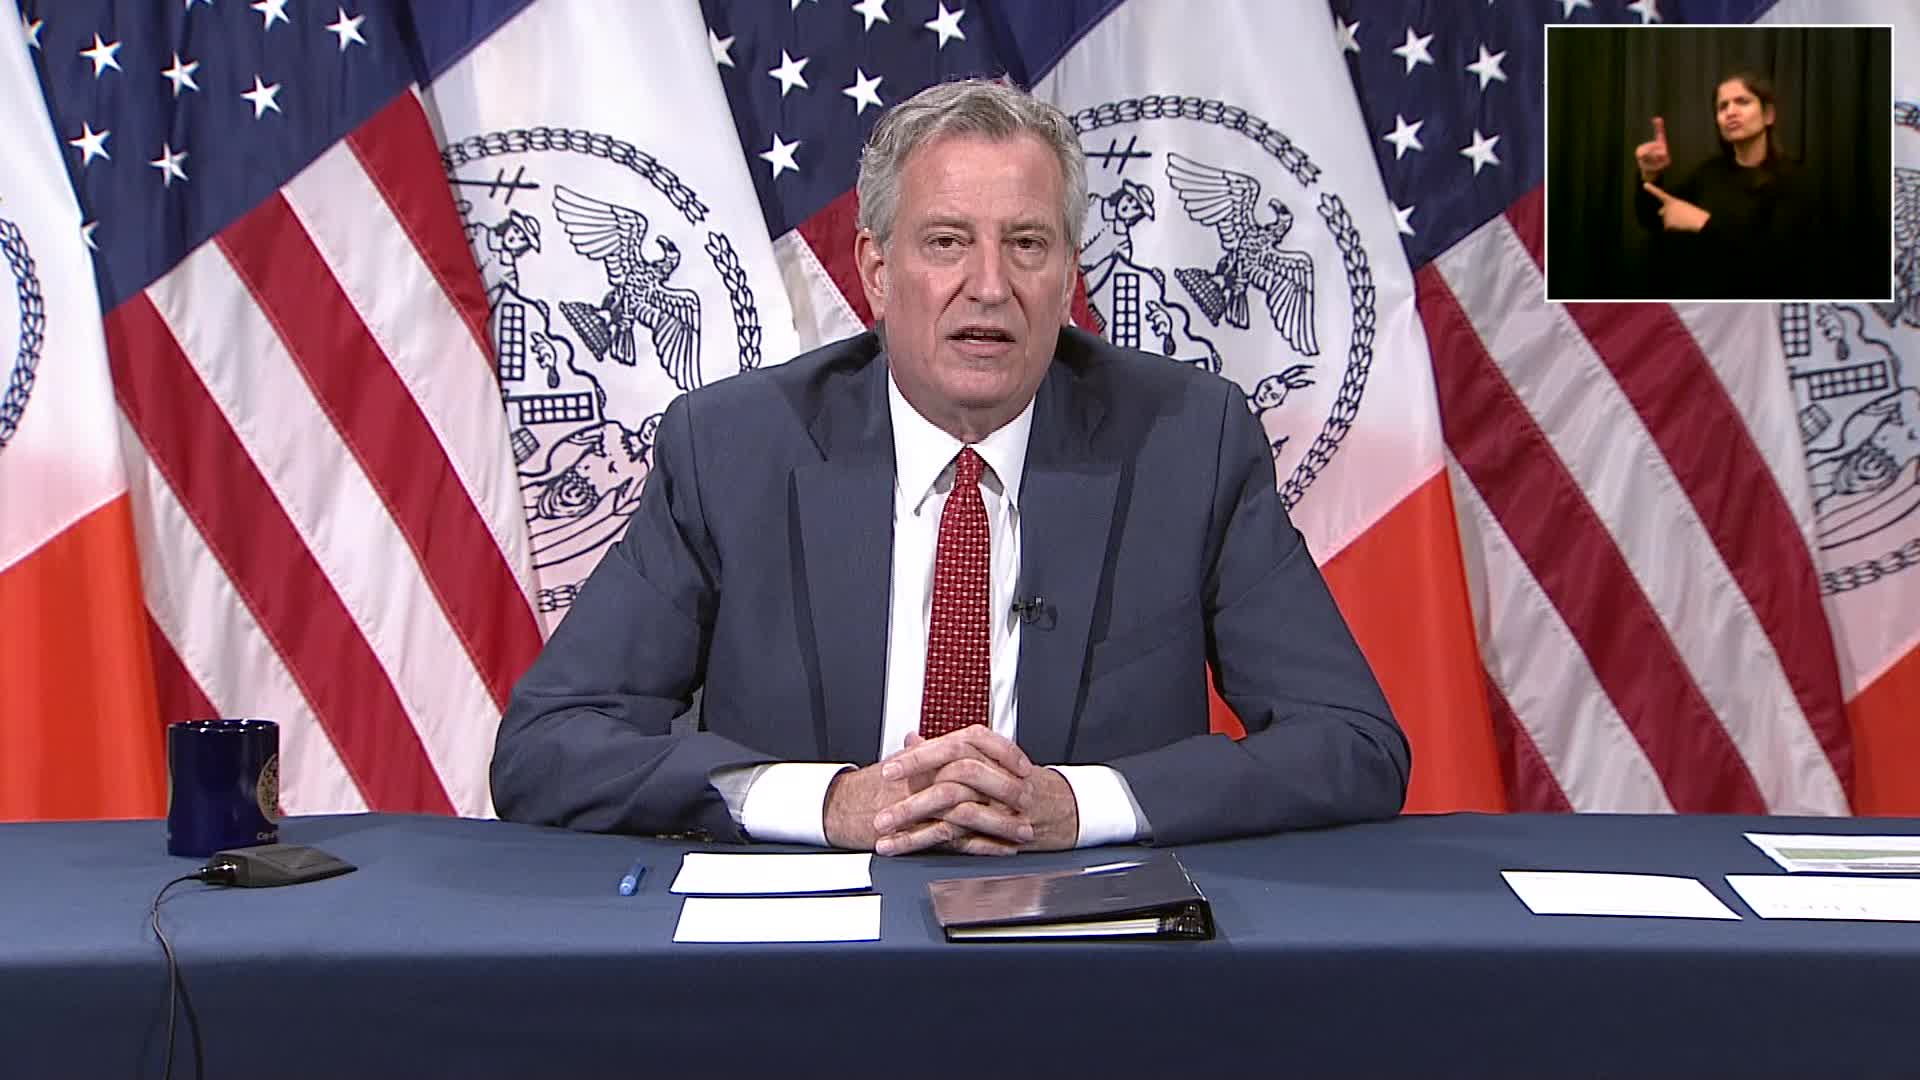 New York CIty Mayor Bill de Blasio speaks during a press conference in New York on June 17.